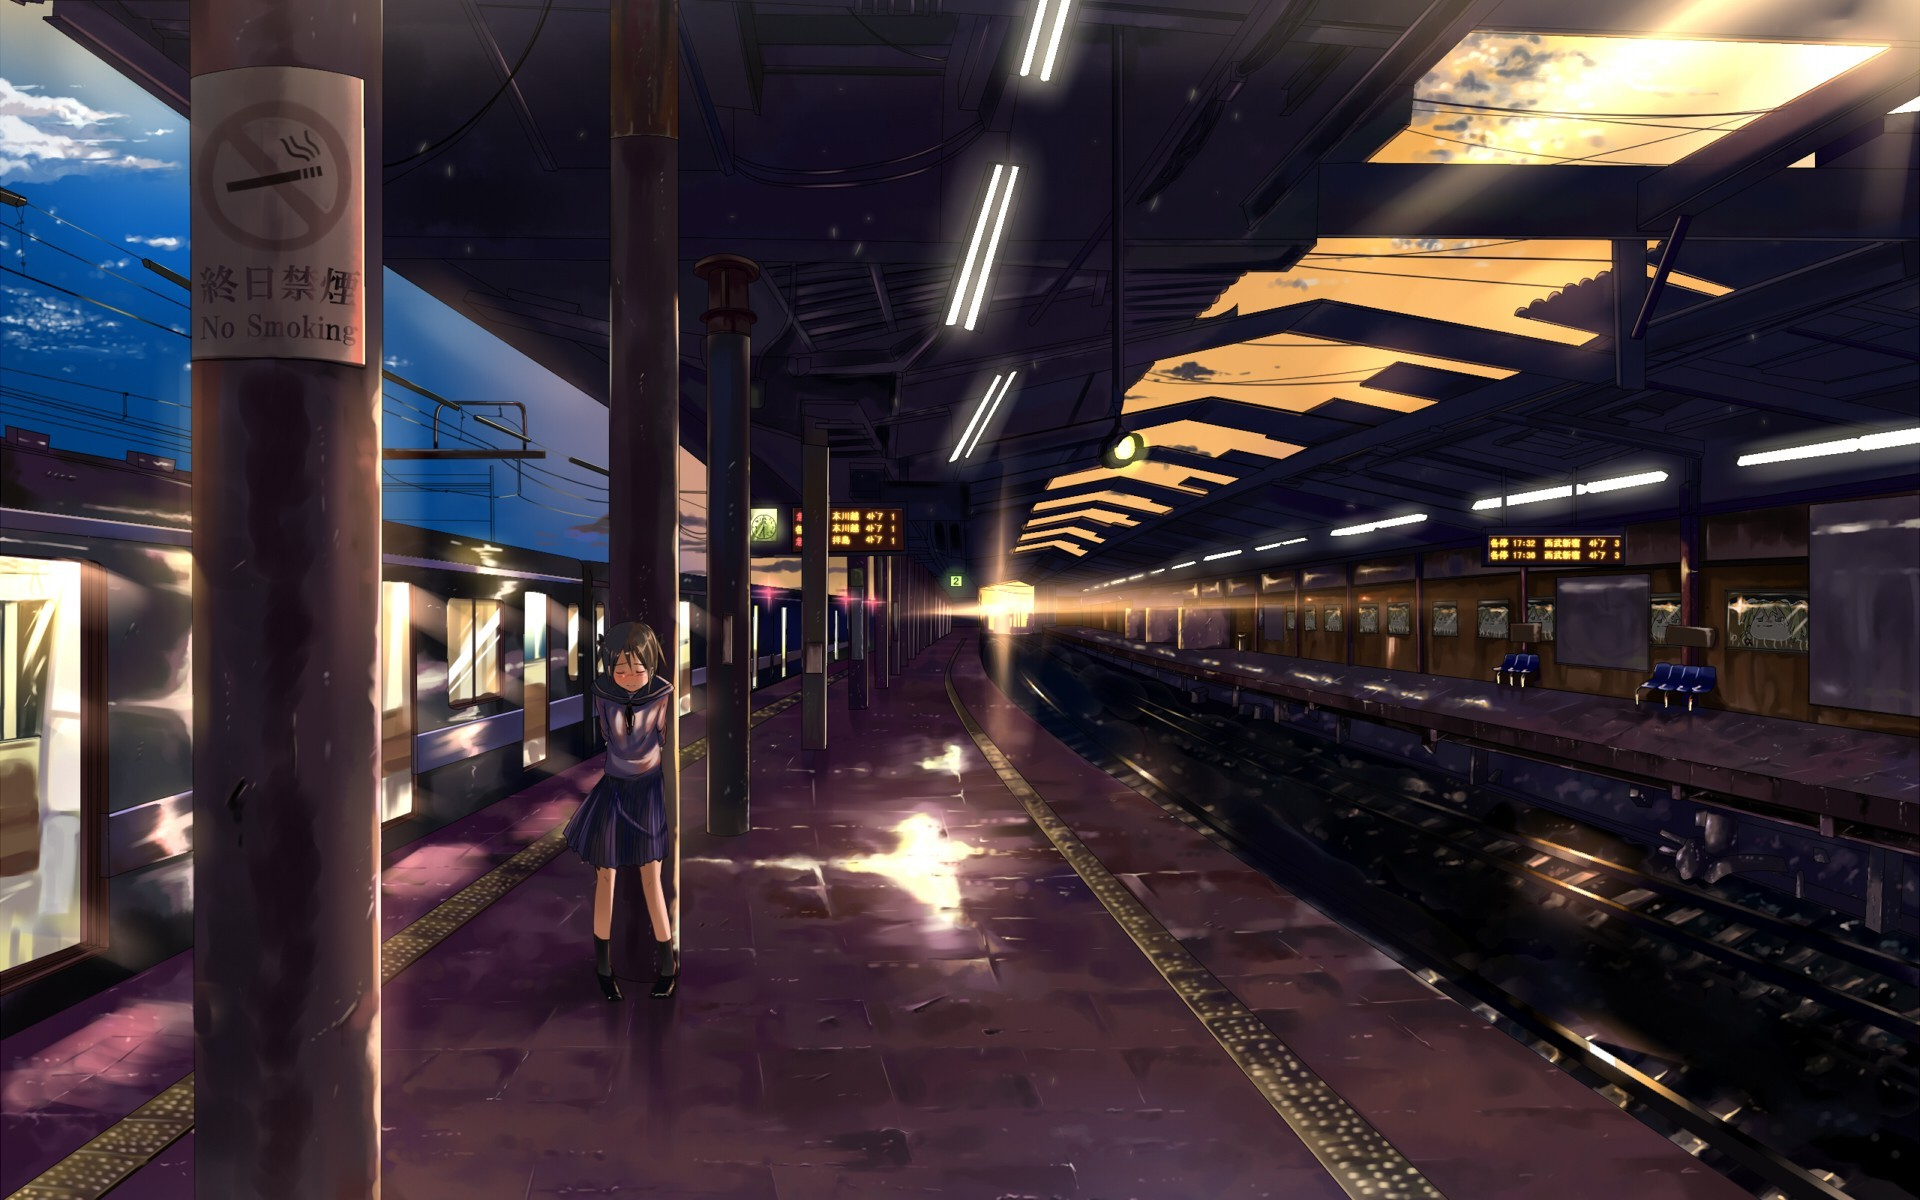 Sad Lonely Crying Girl Hd Wallpapers School Uniforms Alone Trains Skirts Train Stations Blush